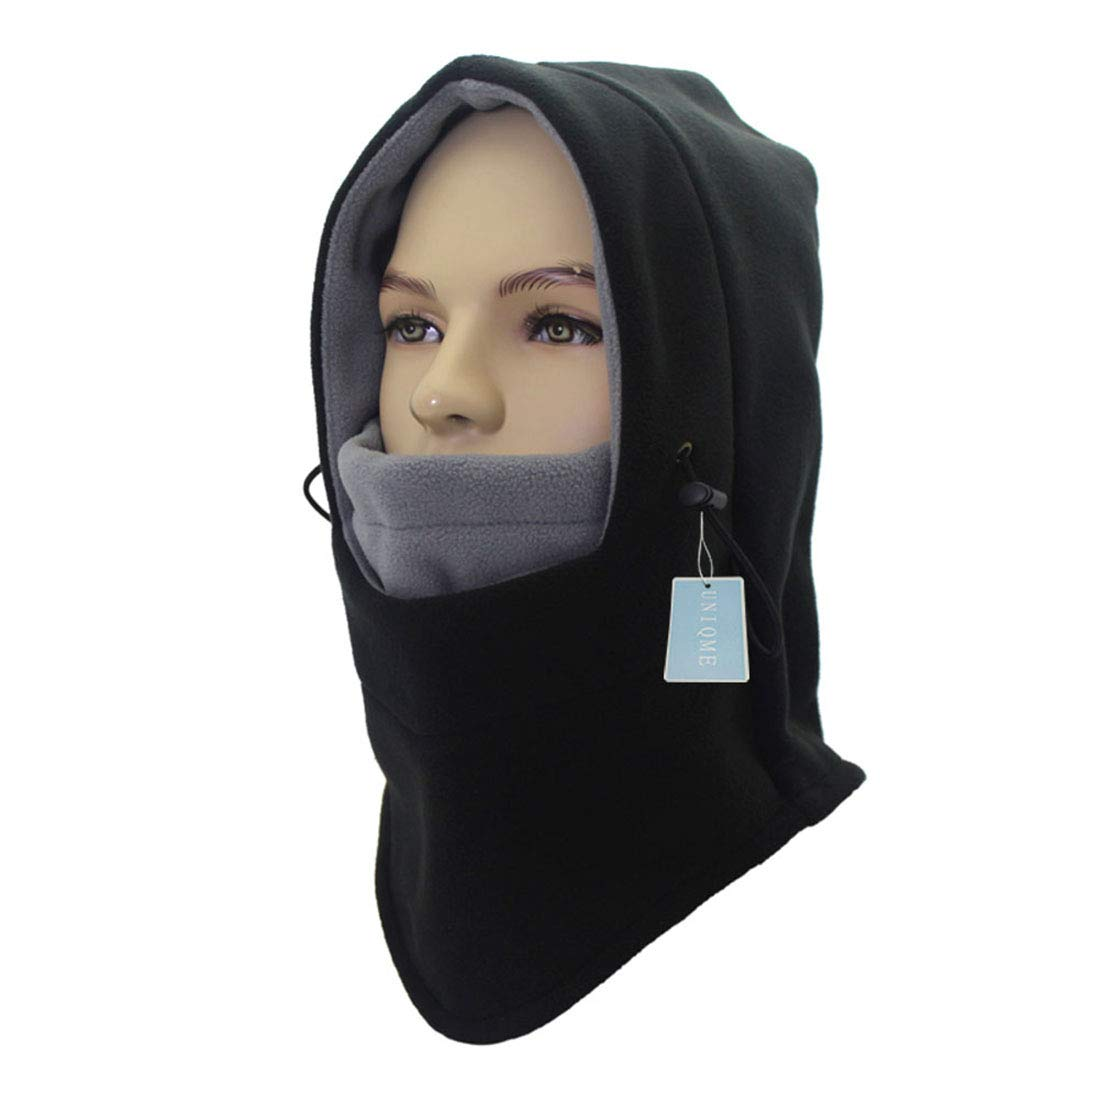 UNIQME Winter Balaclava Face Mask for Men Women Child, Fleece Windproof Ski Face Mask, Balaclava Hood (Black&Grey)